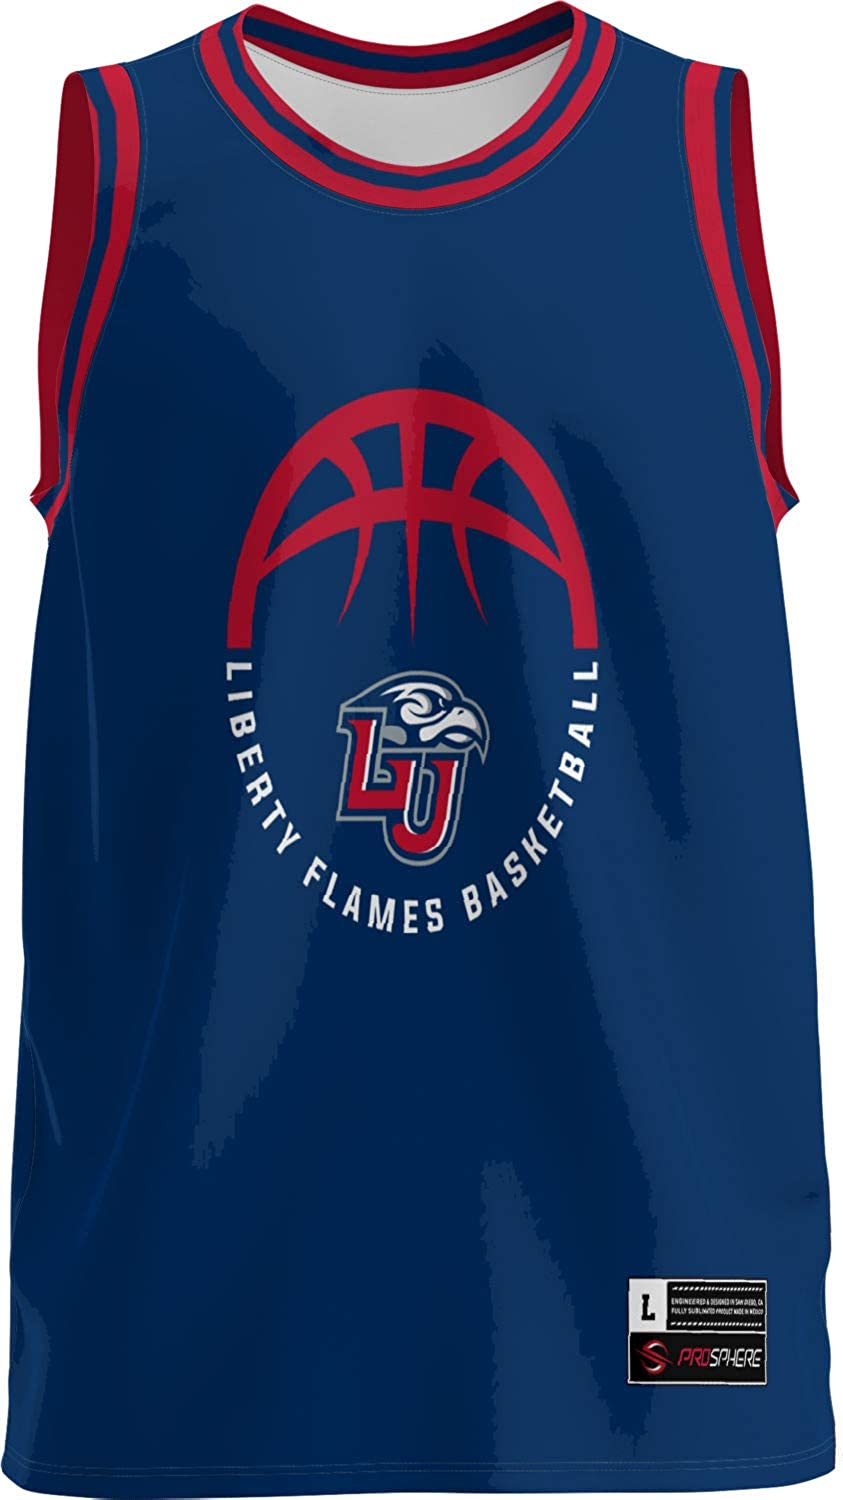 ProSphere Max 44% OFF Liberty University Boys' Basketball Jersey Direct sale of manufacturer